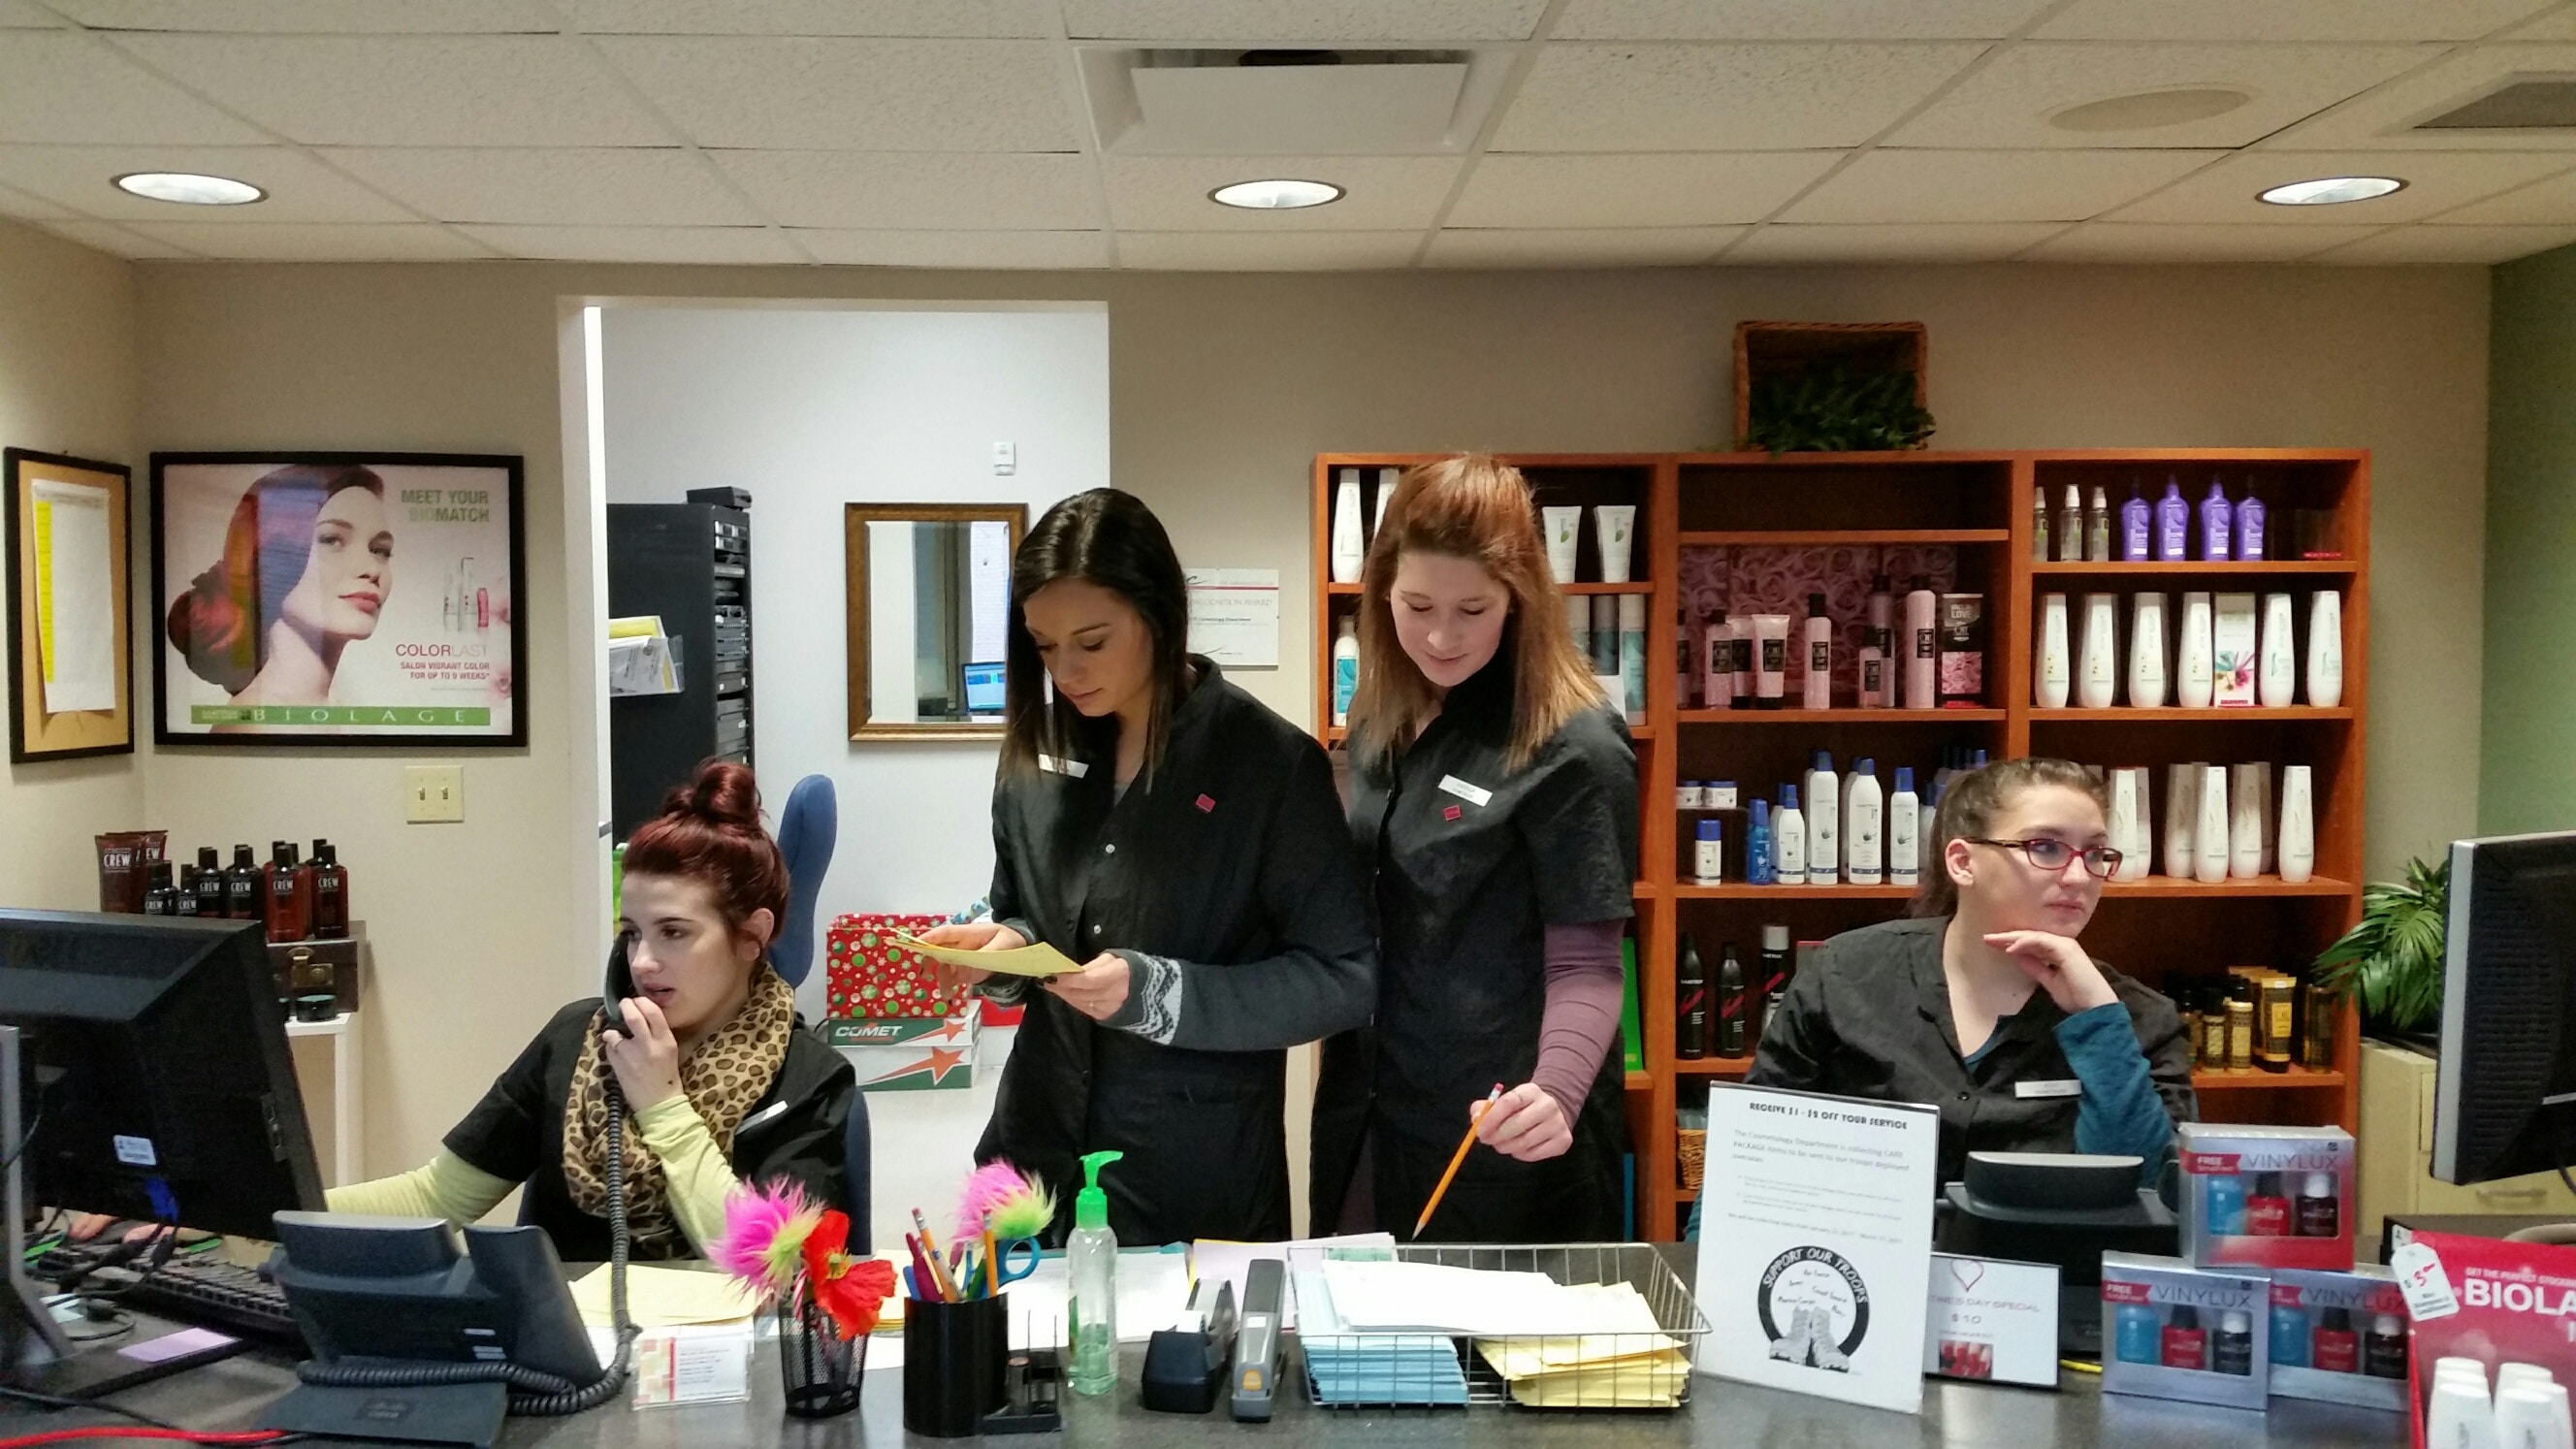 Four female Cosmetology students behind counter